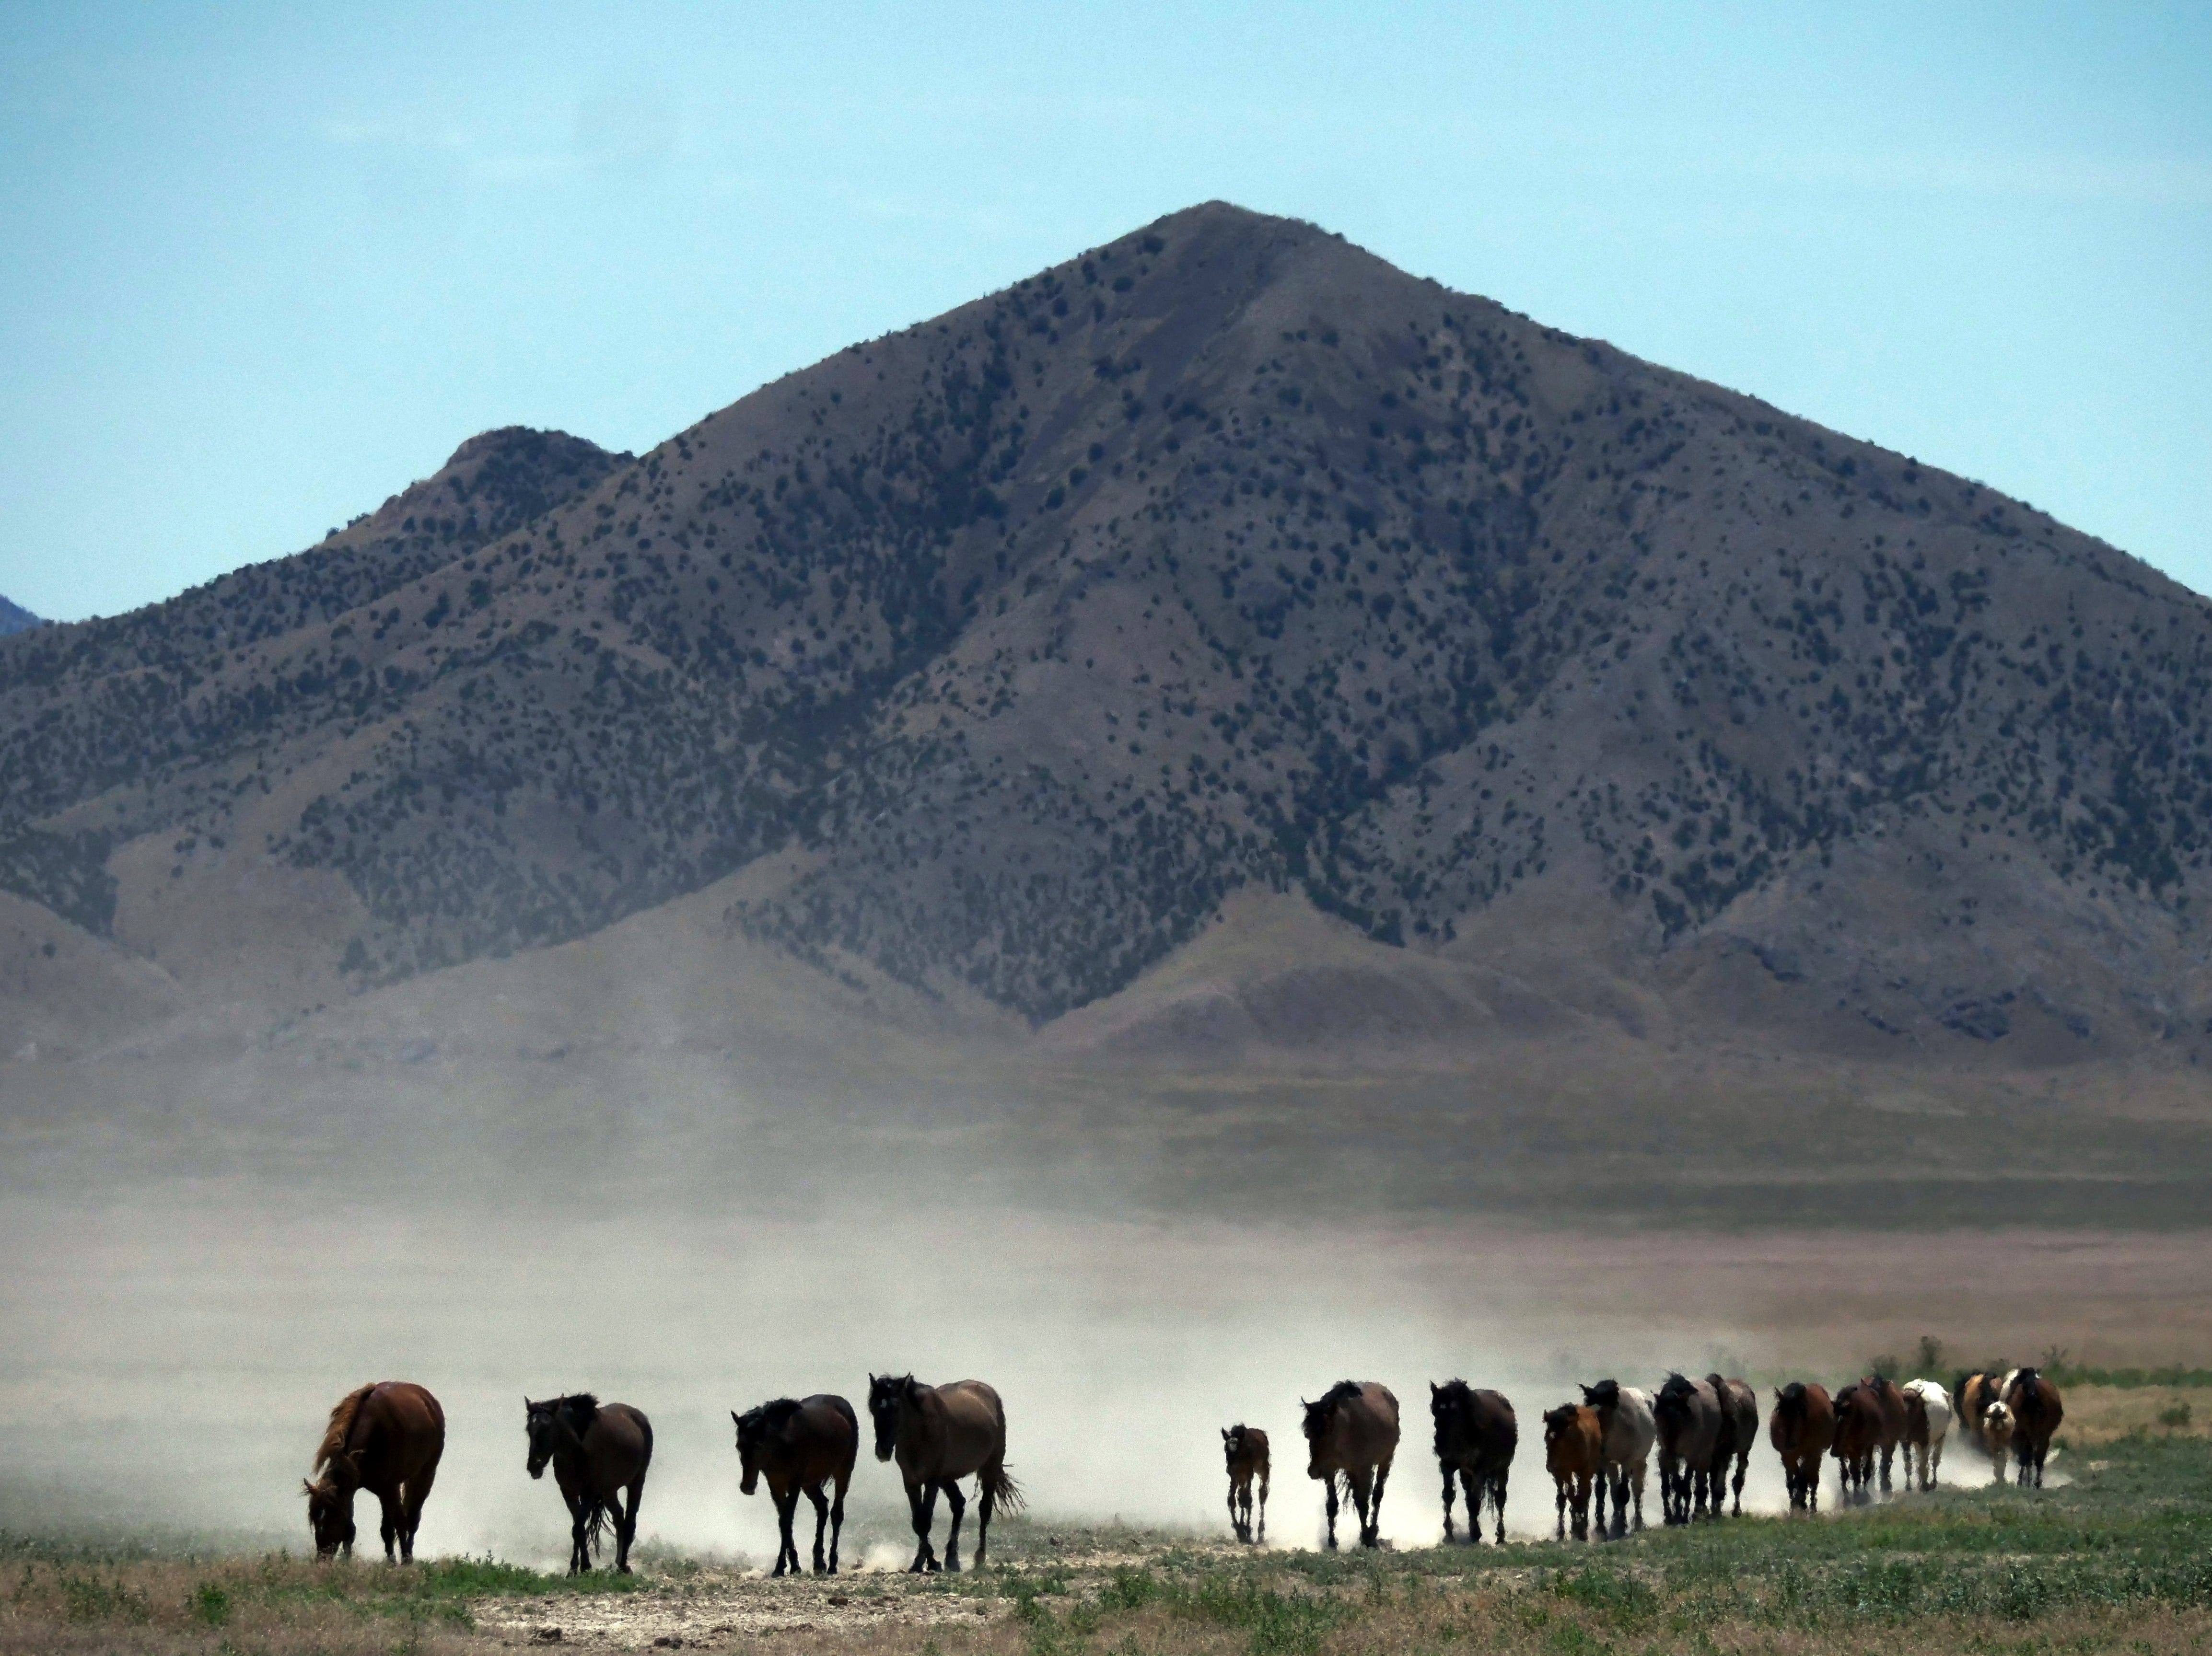 June 29, 2018: Wild horses walk to a watering hole outside Salt Lake City, Utah. Harsh drought conditions in parts of the American West are pushing wild horses to the brink and forcing extreme measures to protect them. Federal land managers have begun emergency roundups in the deserts of western Utah and central Nevada.